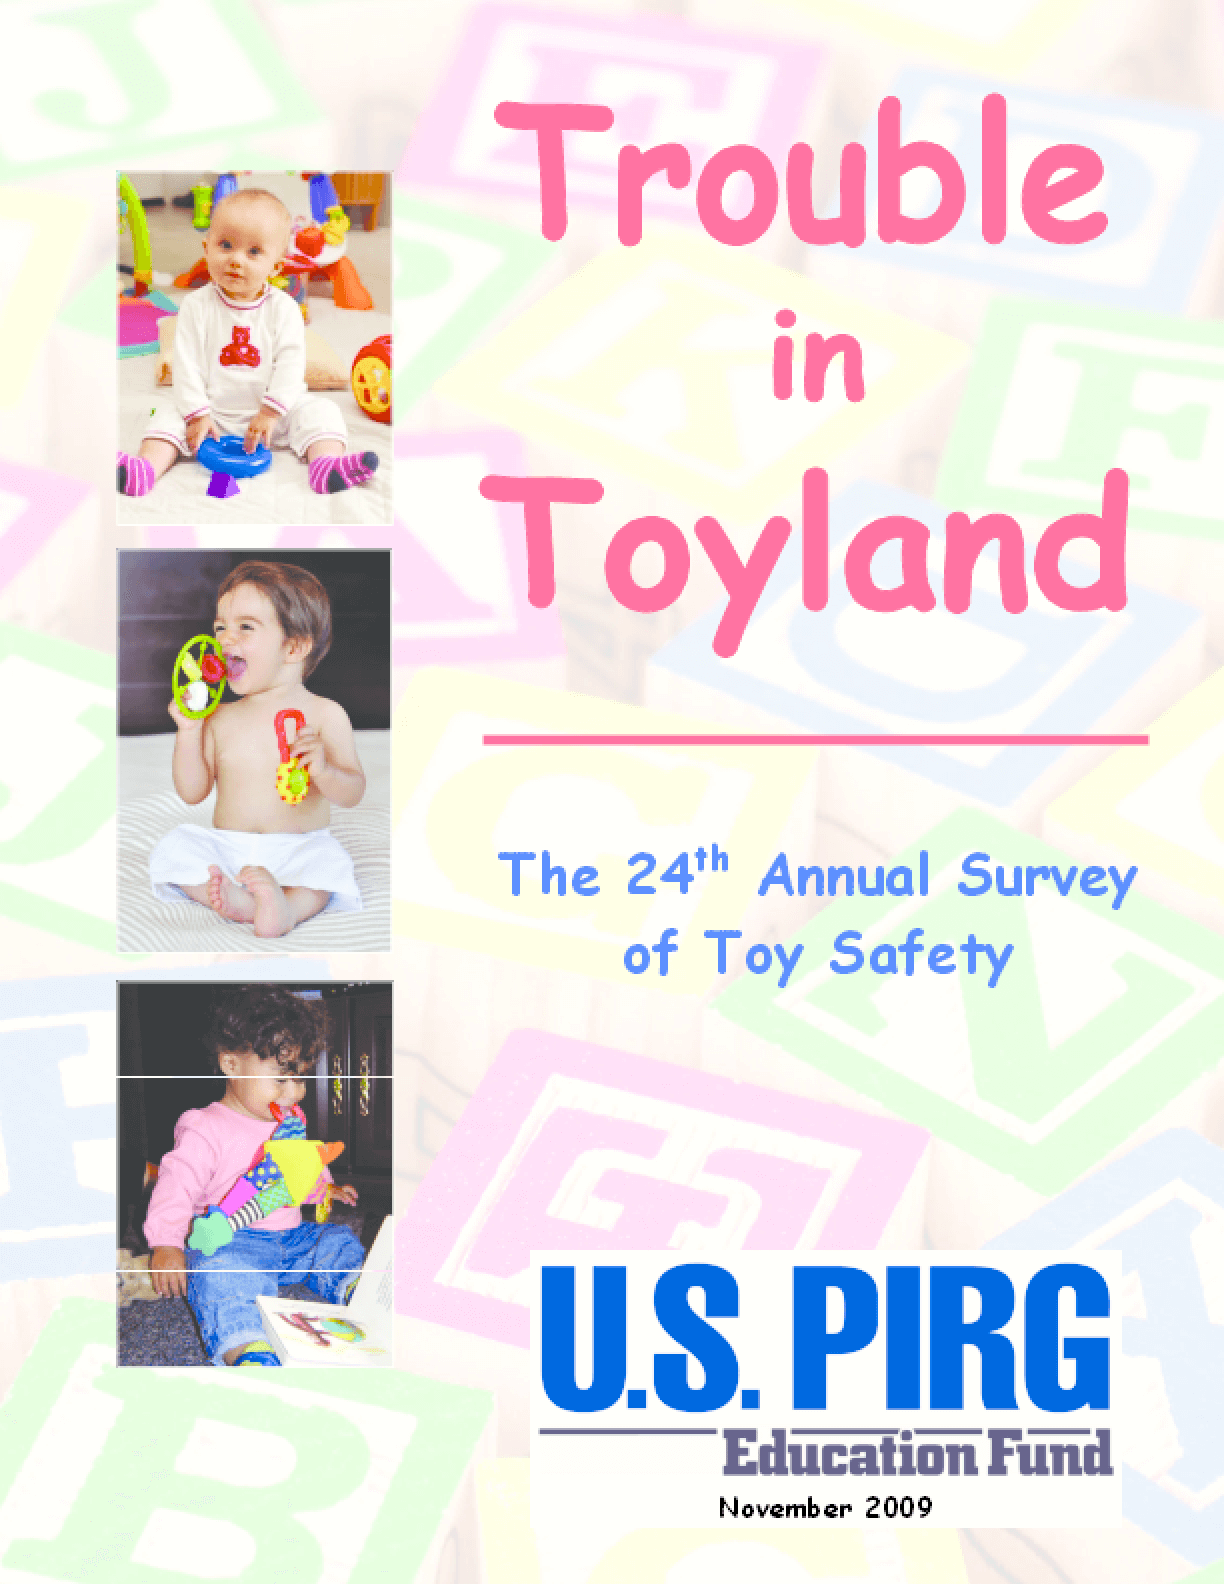 Trouble in Toyland: The 24th Annual Survey of Toy Safety